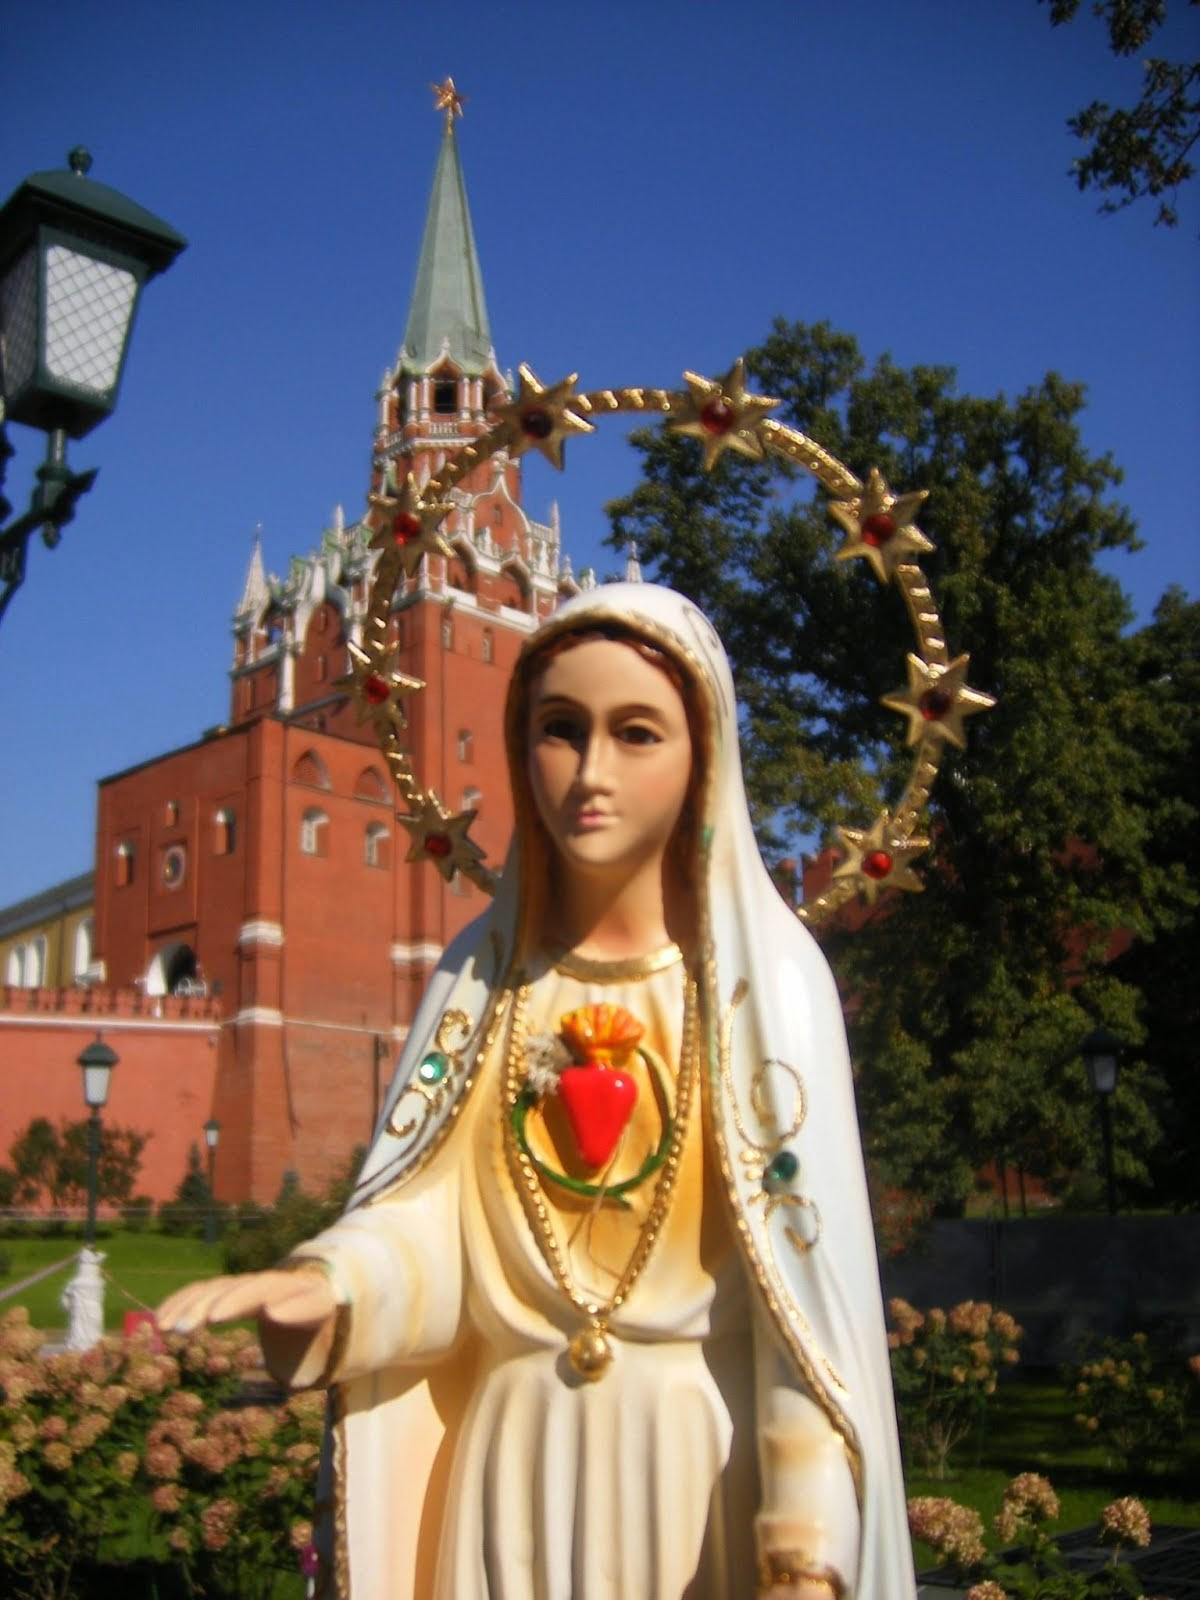 The Holy Virgin Mary and the Kremlin Russia December 2014